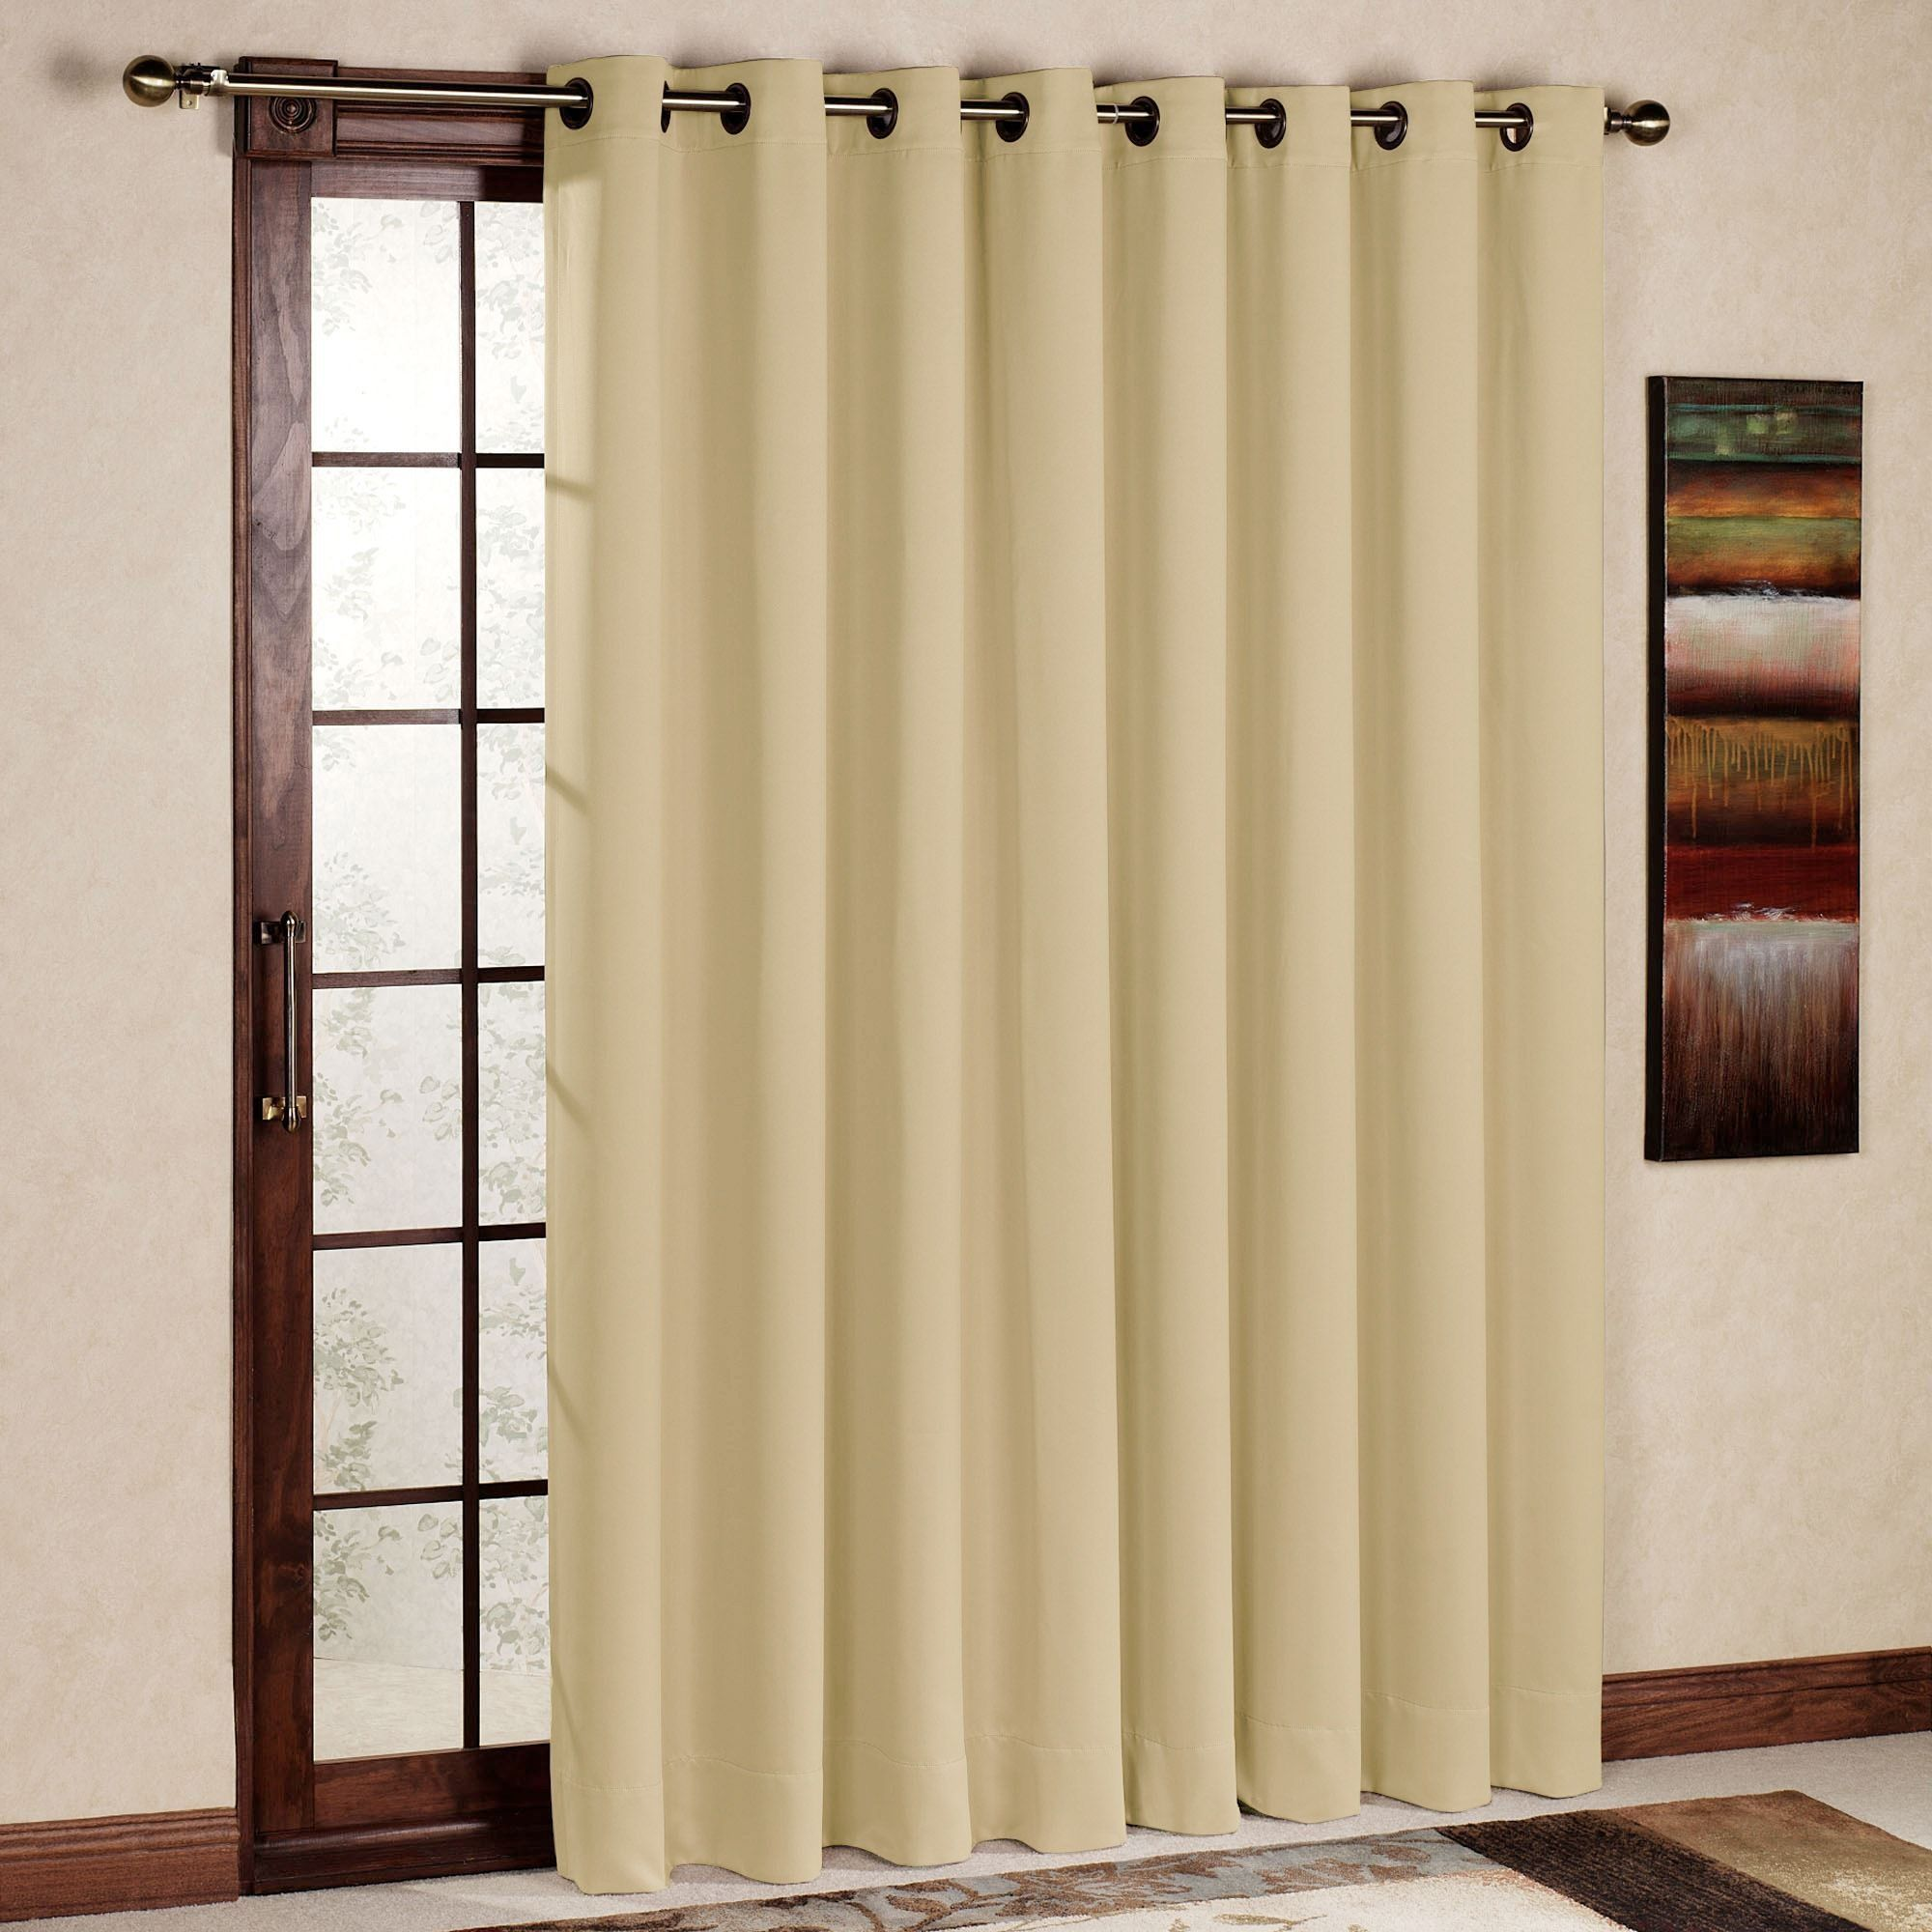 Rhf Wide Thermal Blackout Patio Door Curtain Panel Sliding